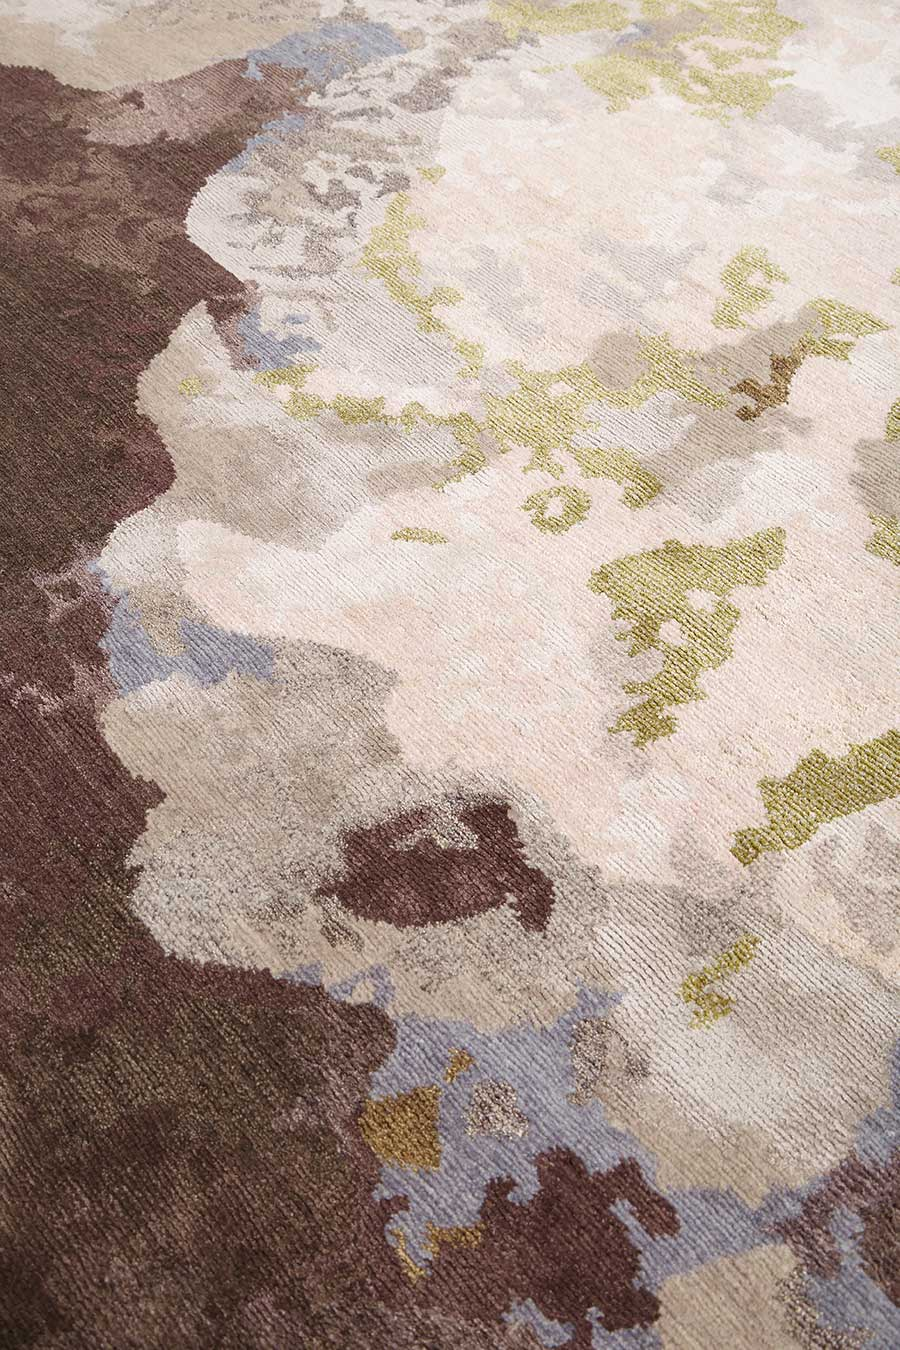 Close up image of multicoloured Botanic handknot rug by Hare + Klein